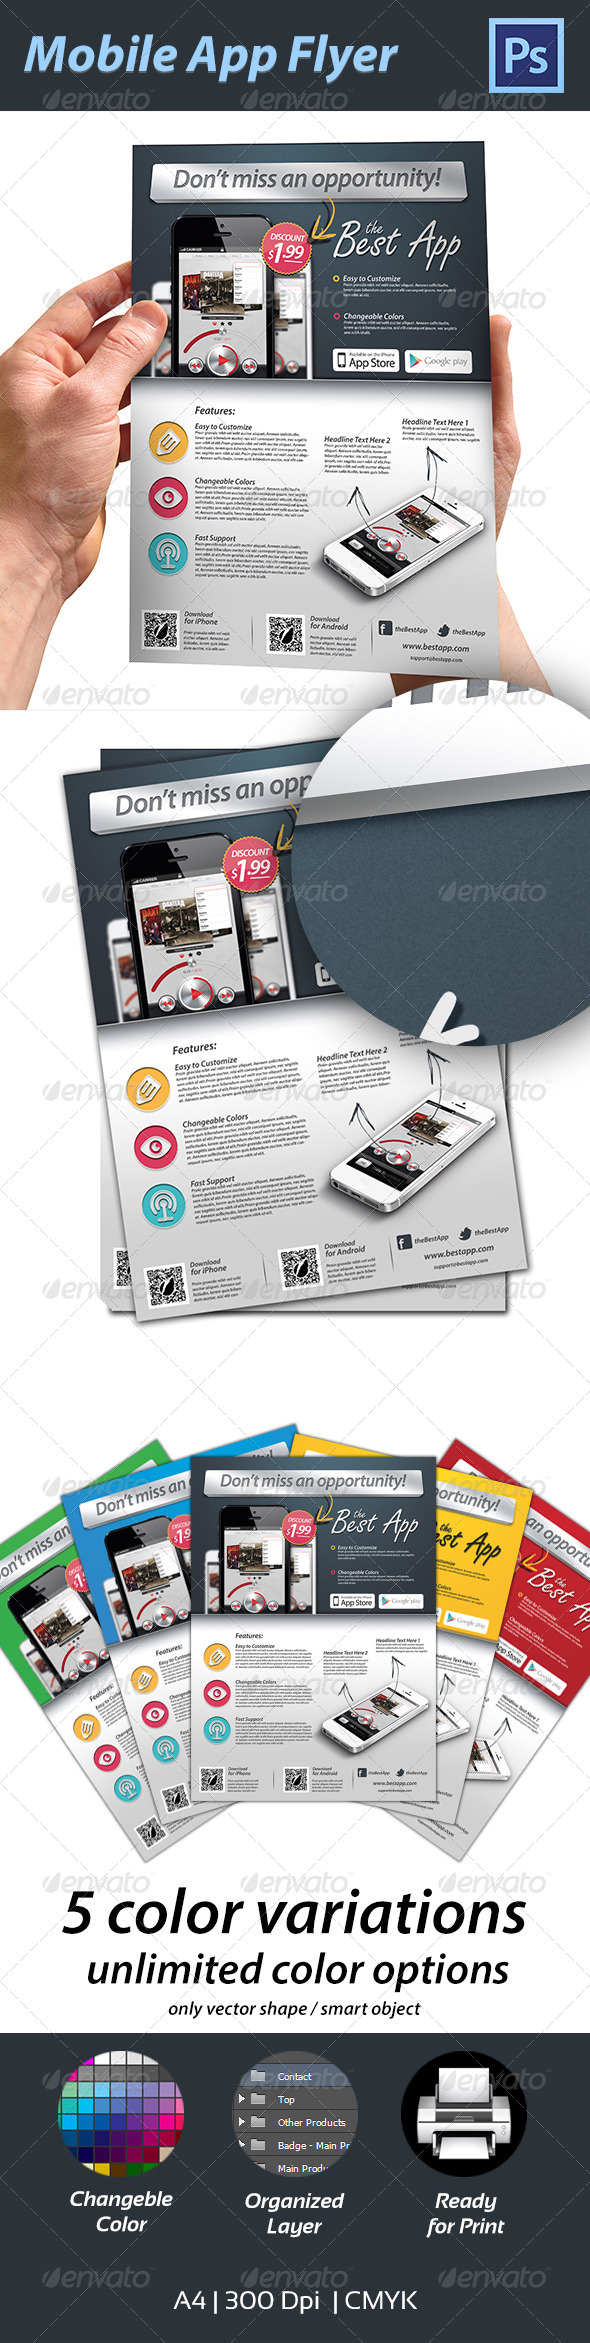 App Flyer Graphics, Designs & Templates from GraphicRiver